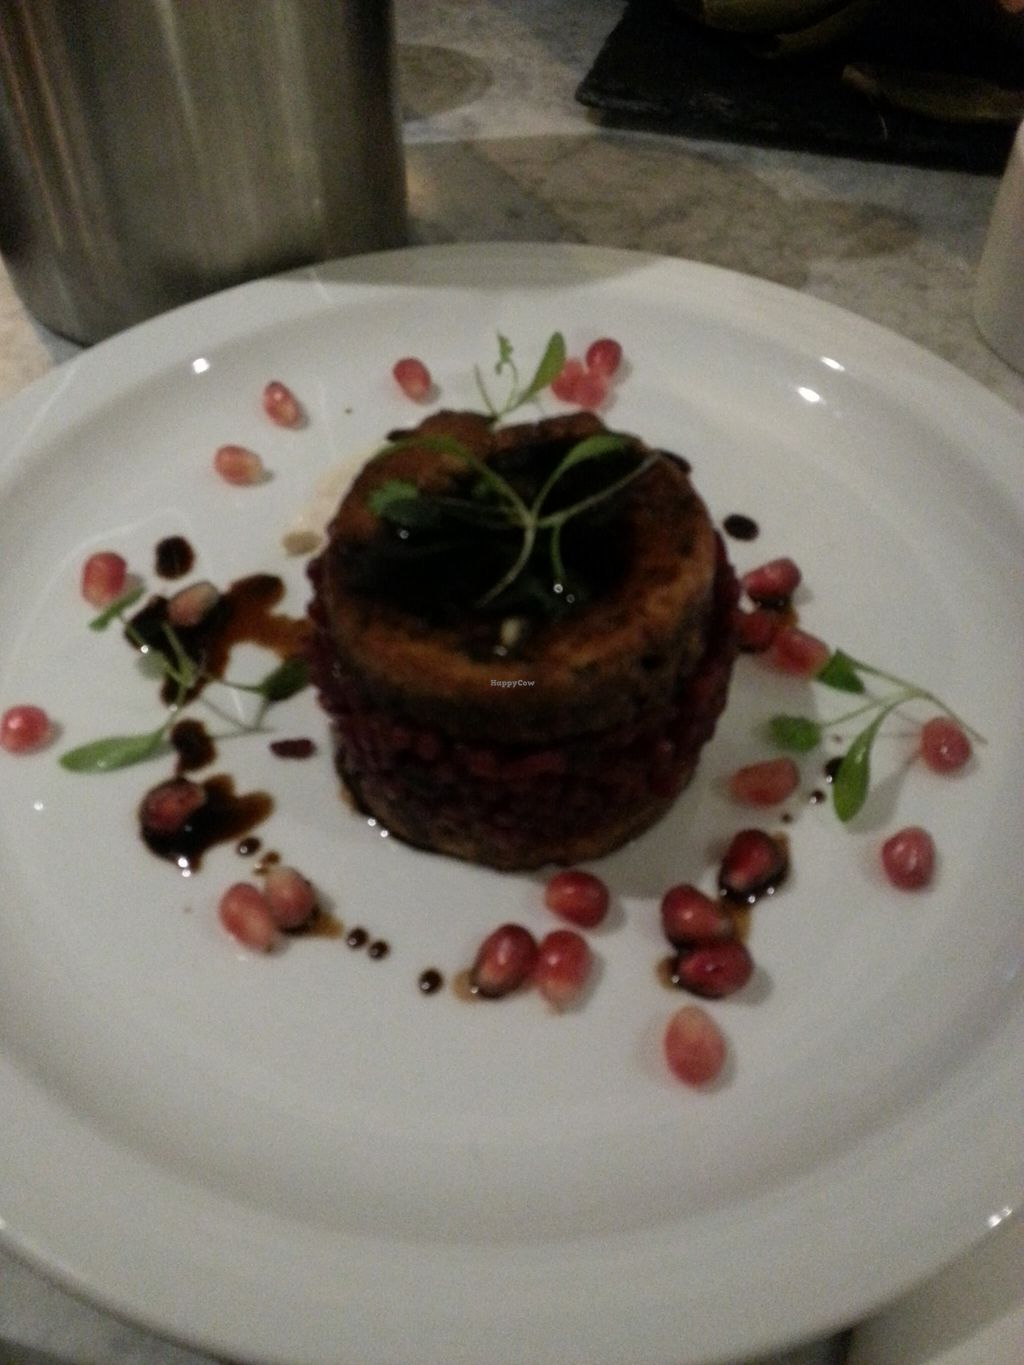 """Photo of CLOSED: 1847  by <a href=""""/members/profile/Miggi"""">Miggi</a> <br/>Tofu starter with beetroot risotto <br/> January 4, 2016  - <a href='/contact/abuse/image/65957/131063'>Report</a>"""